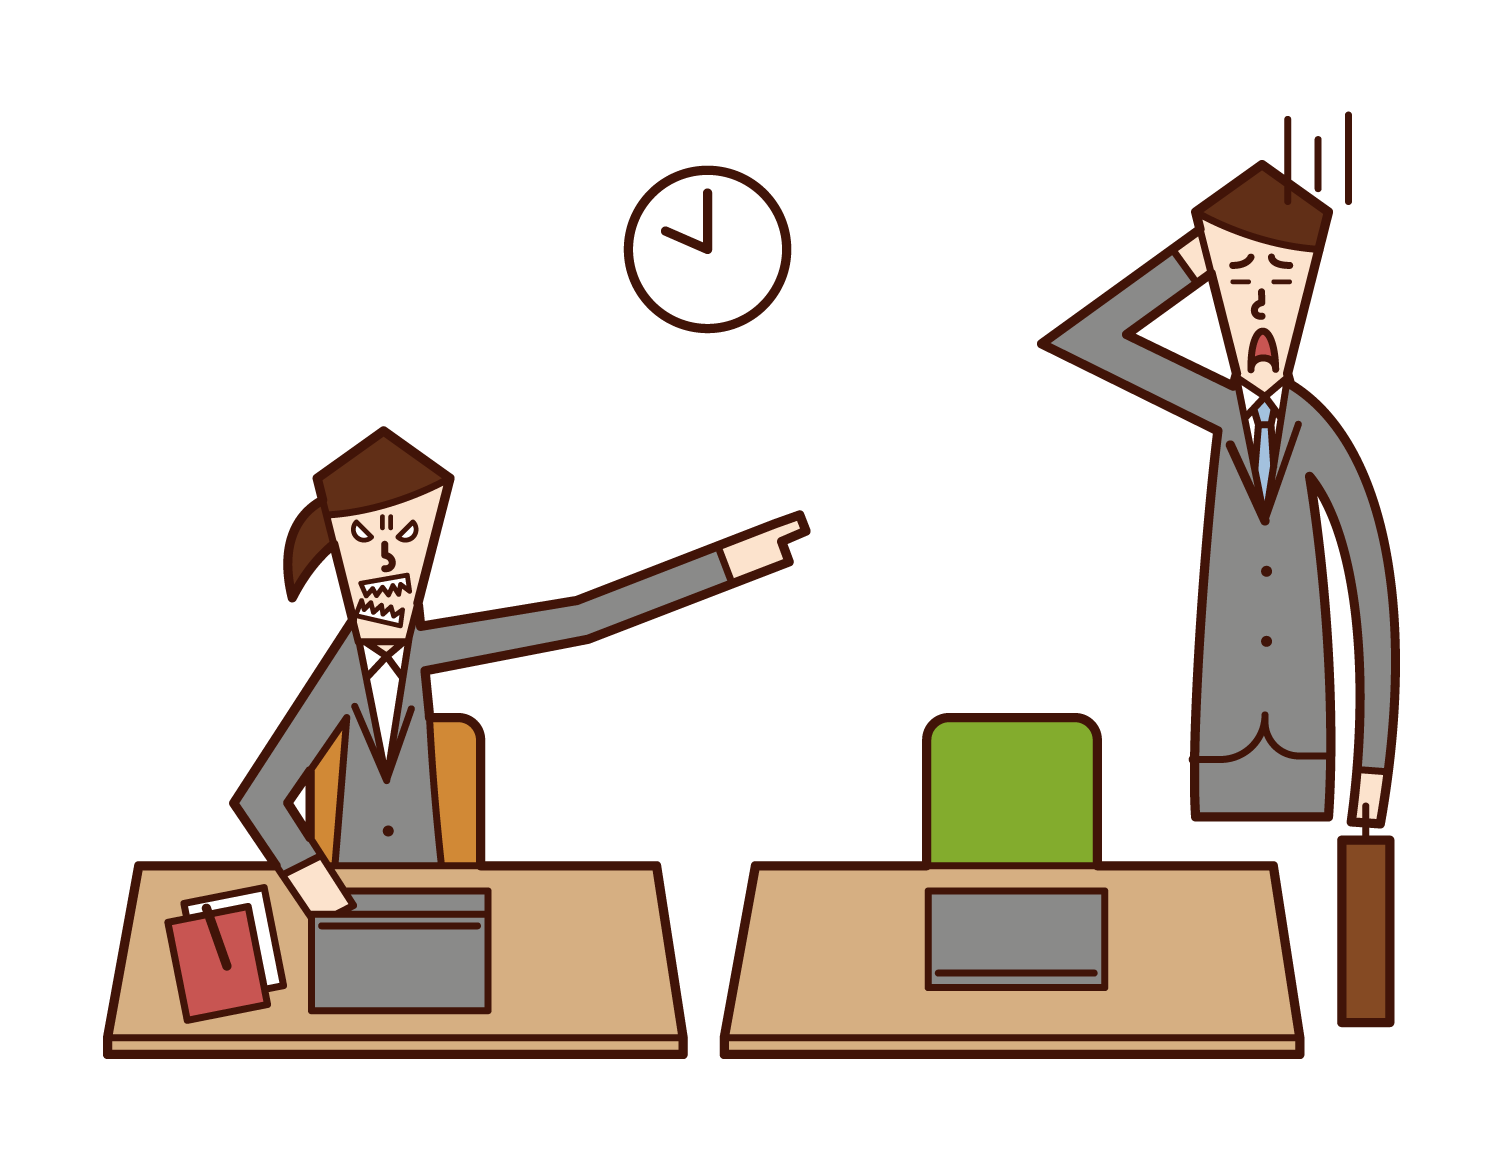 Illustration of a man who came to work late